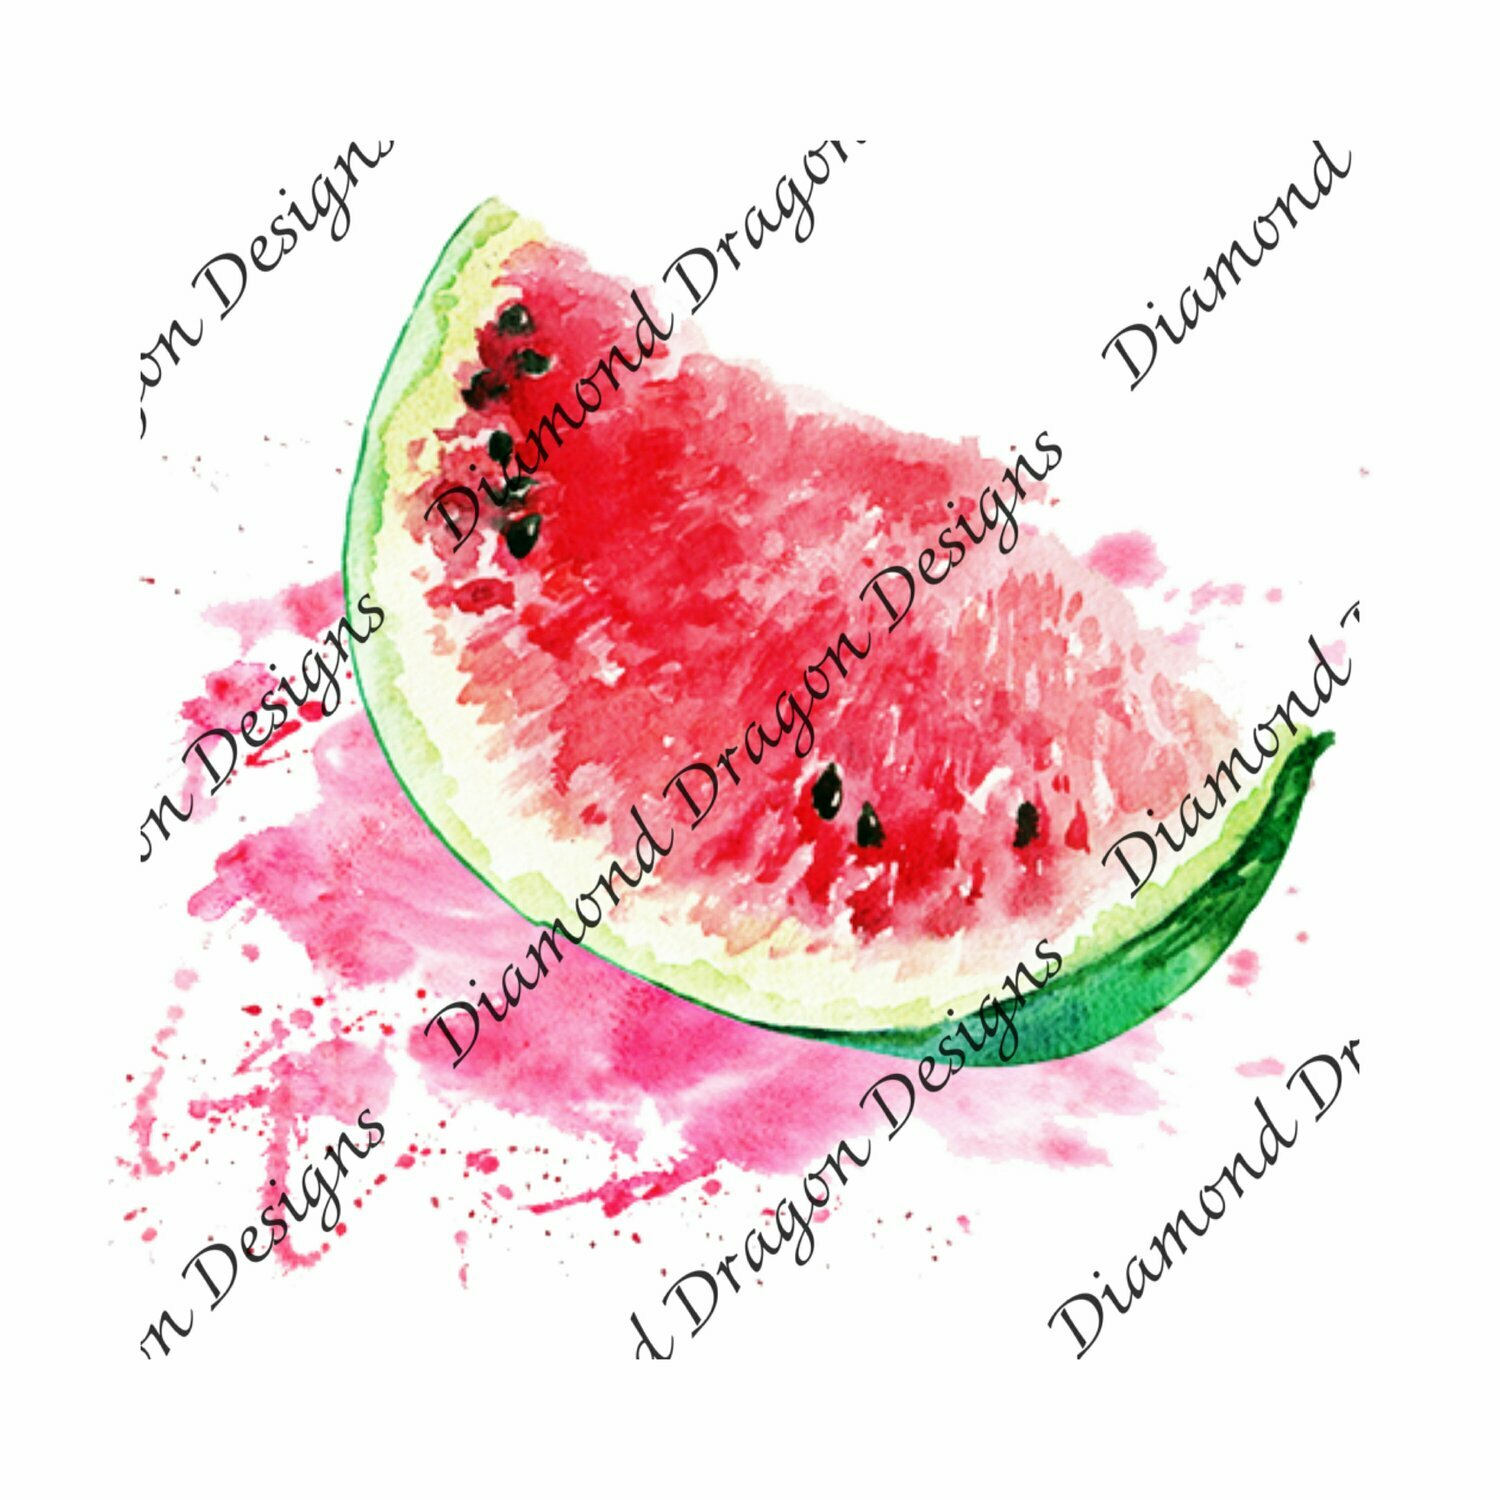 Watermelon - Summer, Summer time, Watermelon Slice, Watercolor, Waterslide